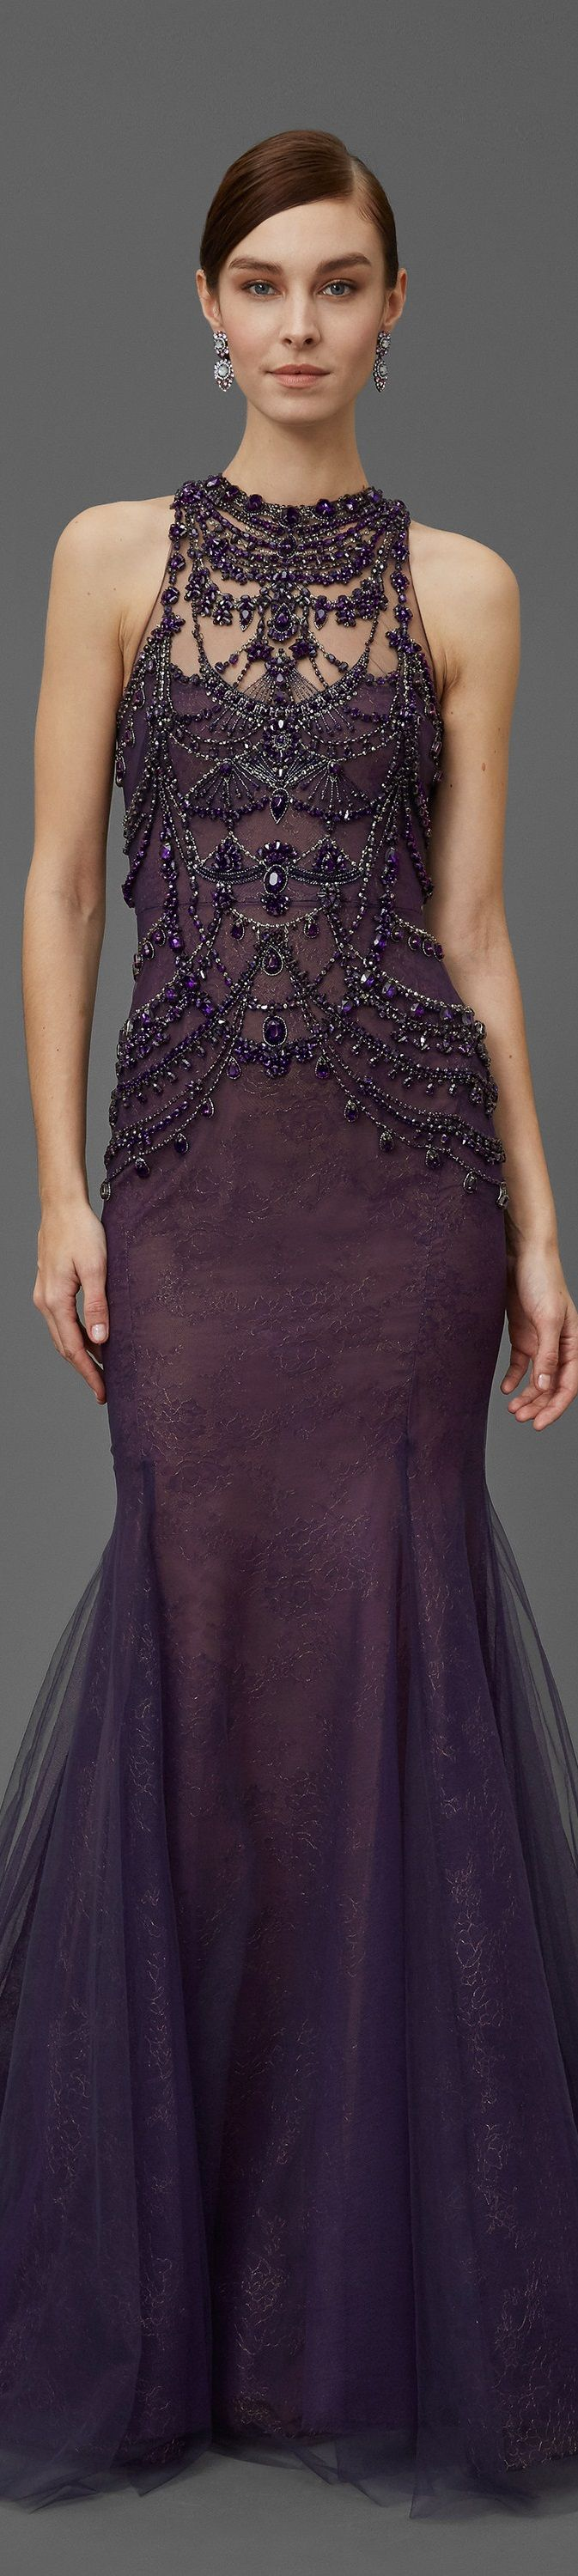 Marchesa Pre Fall 2016 women fashion outfit clothing style apparel @roressclothes closet ideas